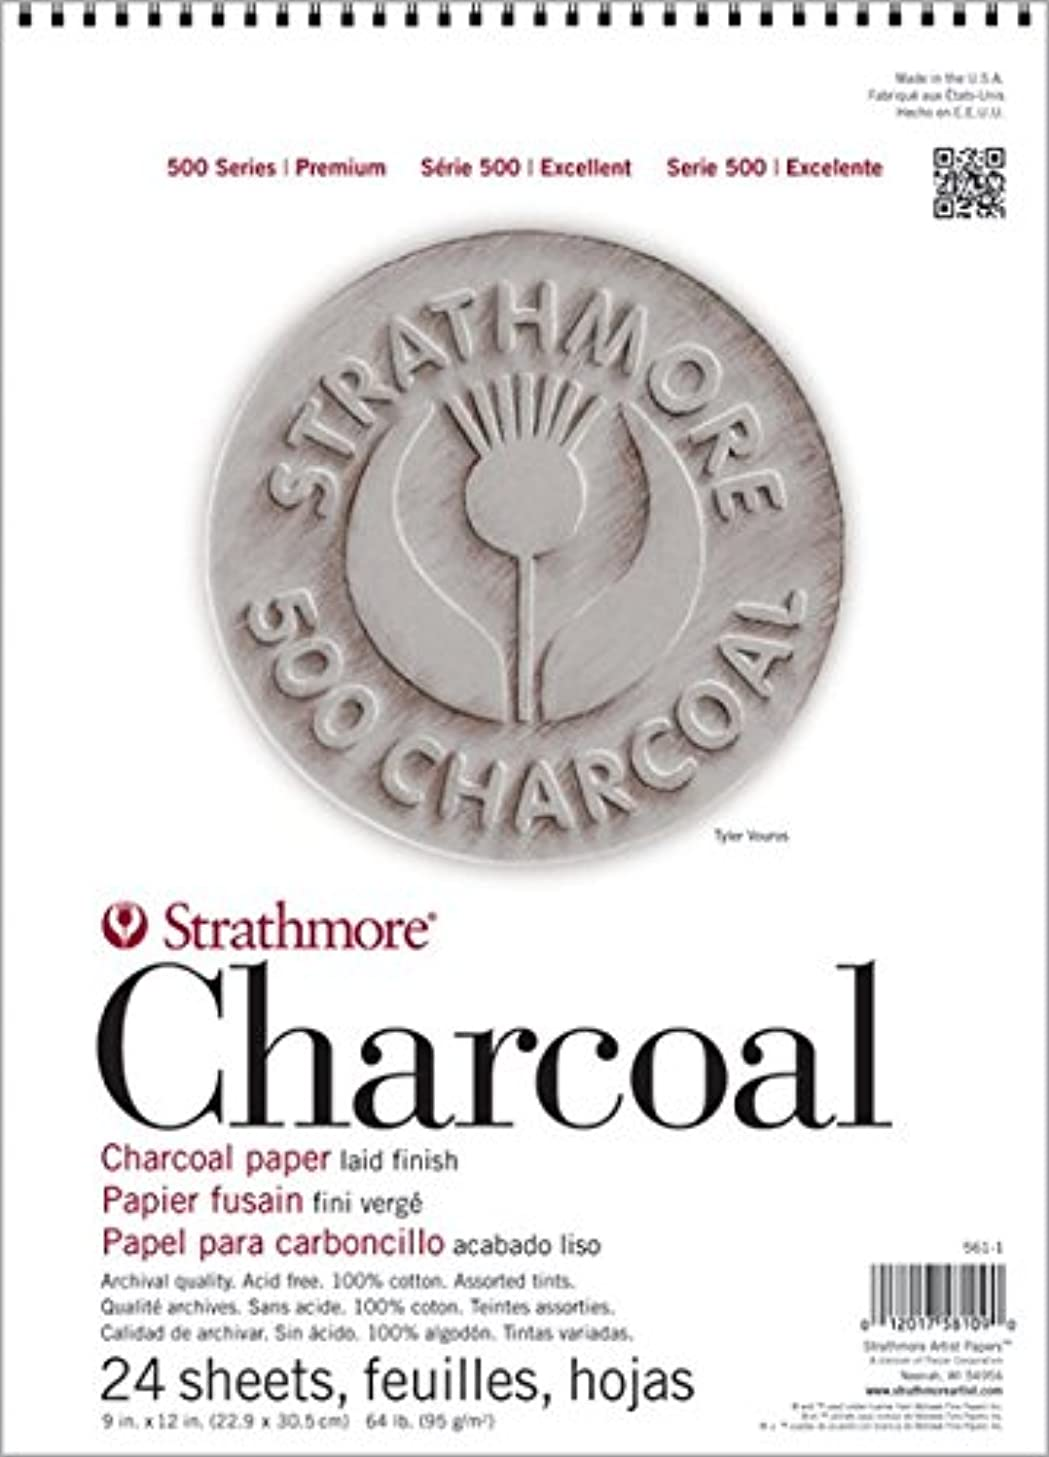 Strathmore ((560-2 500 Series Charcoal Pad, 12